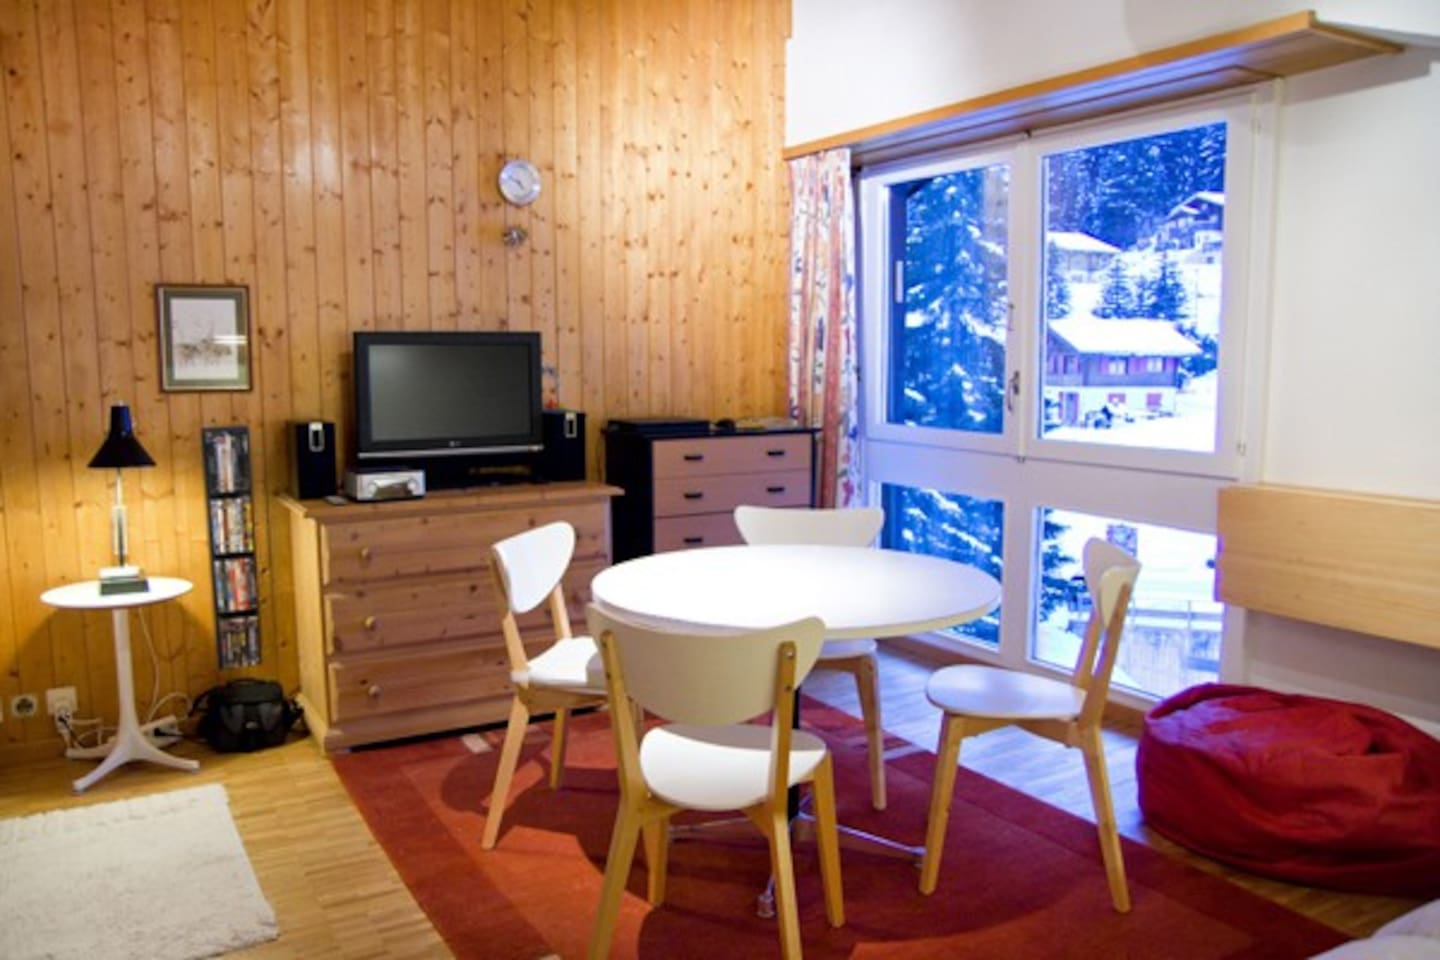 32m2 apartment in ski resort Anzere